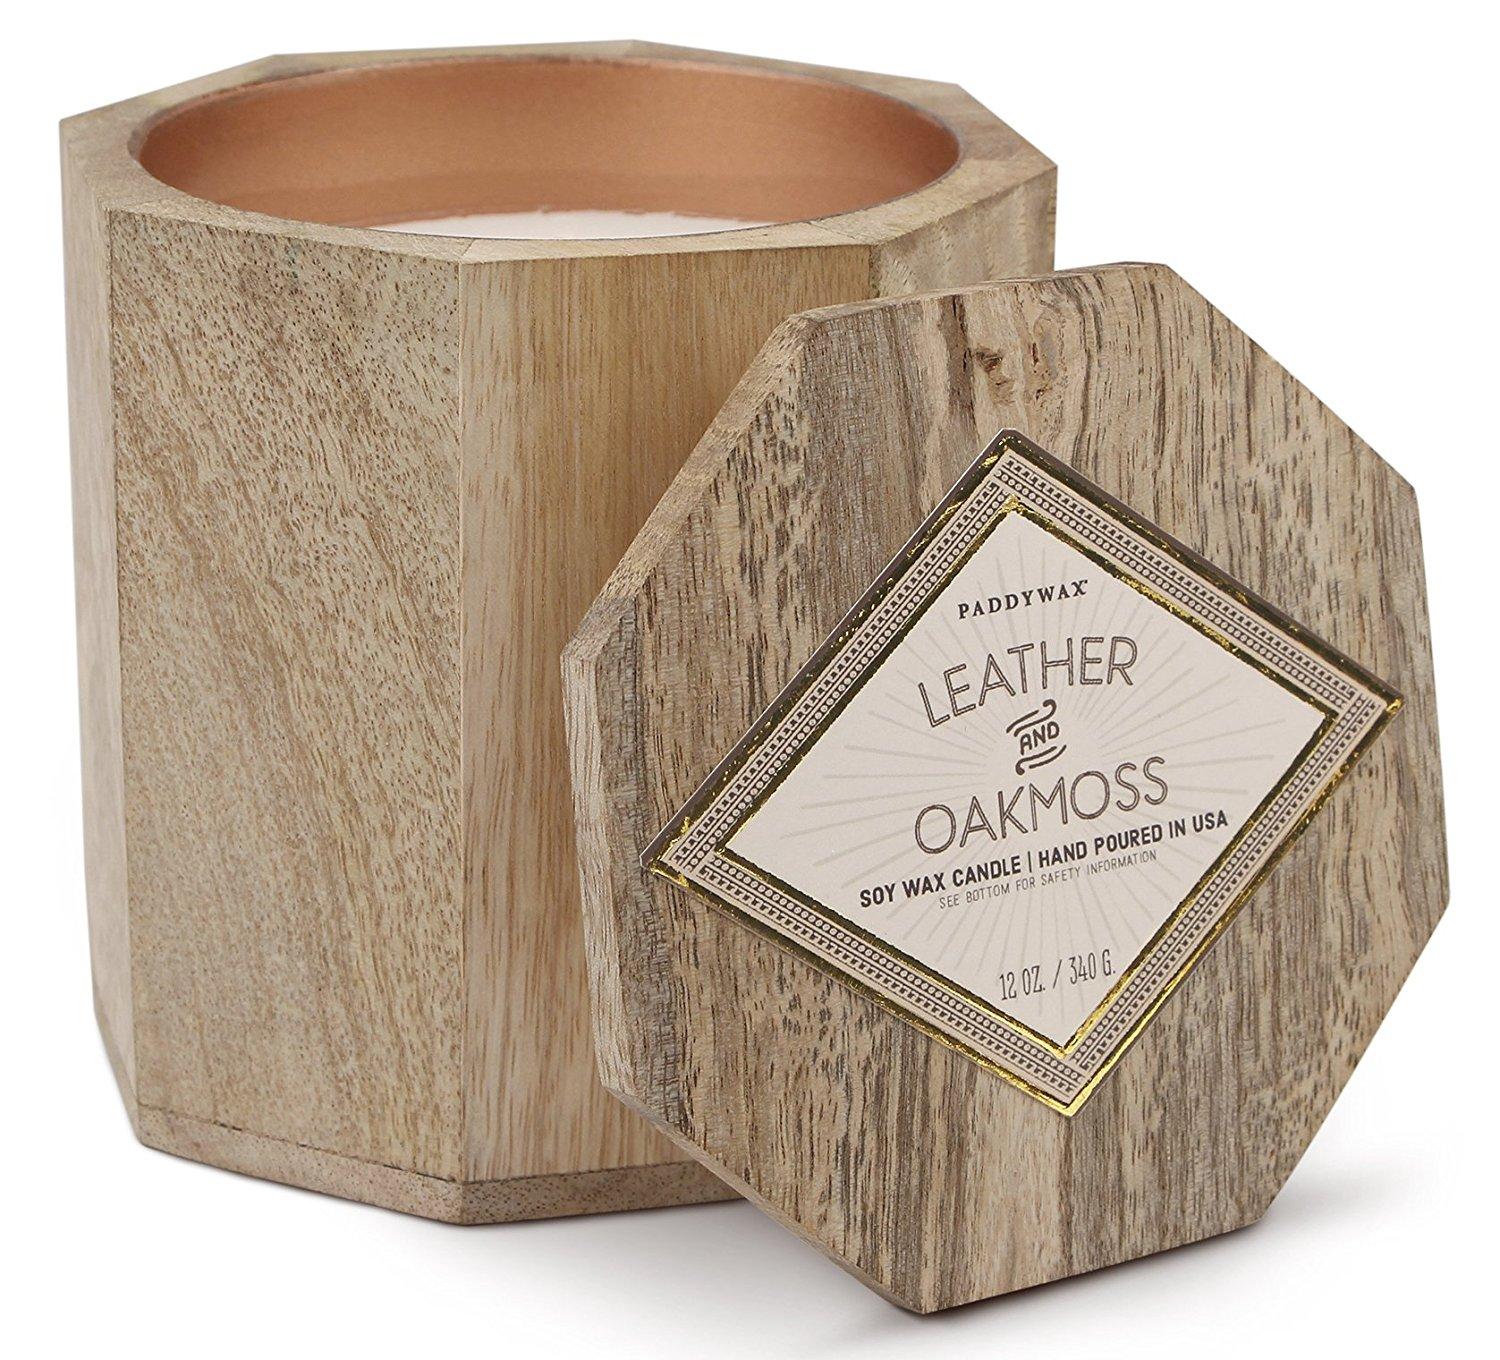 This fragrant, artisan, hand-poured candle brings elegance to any room. - $